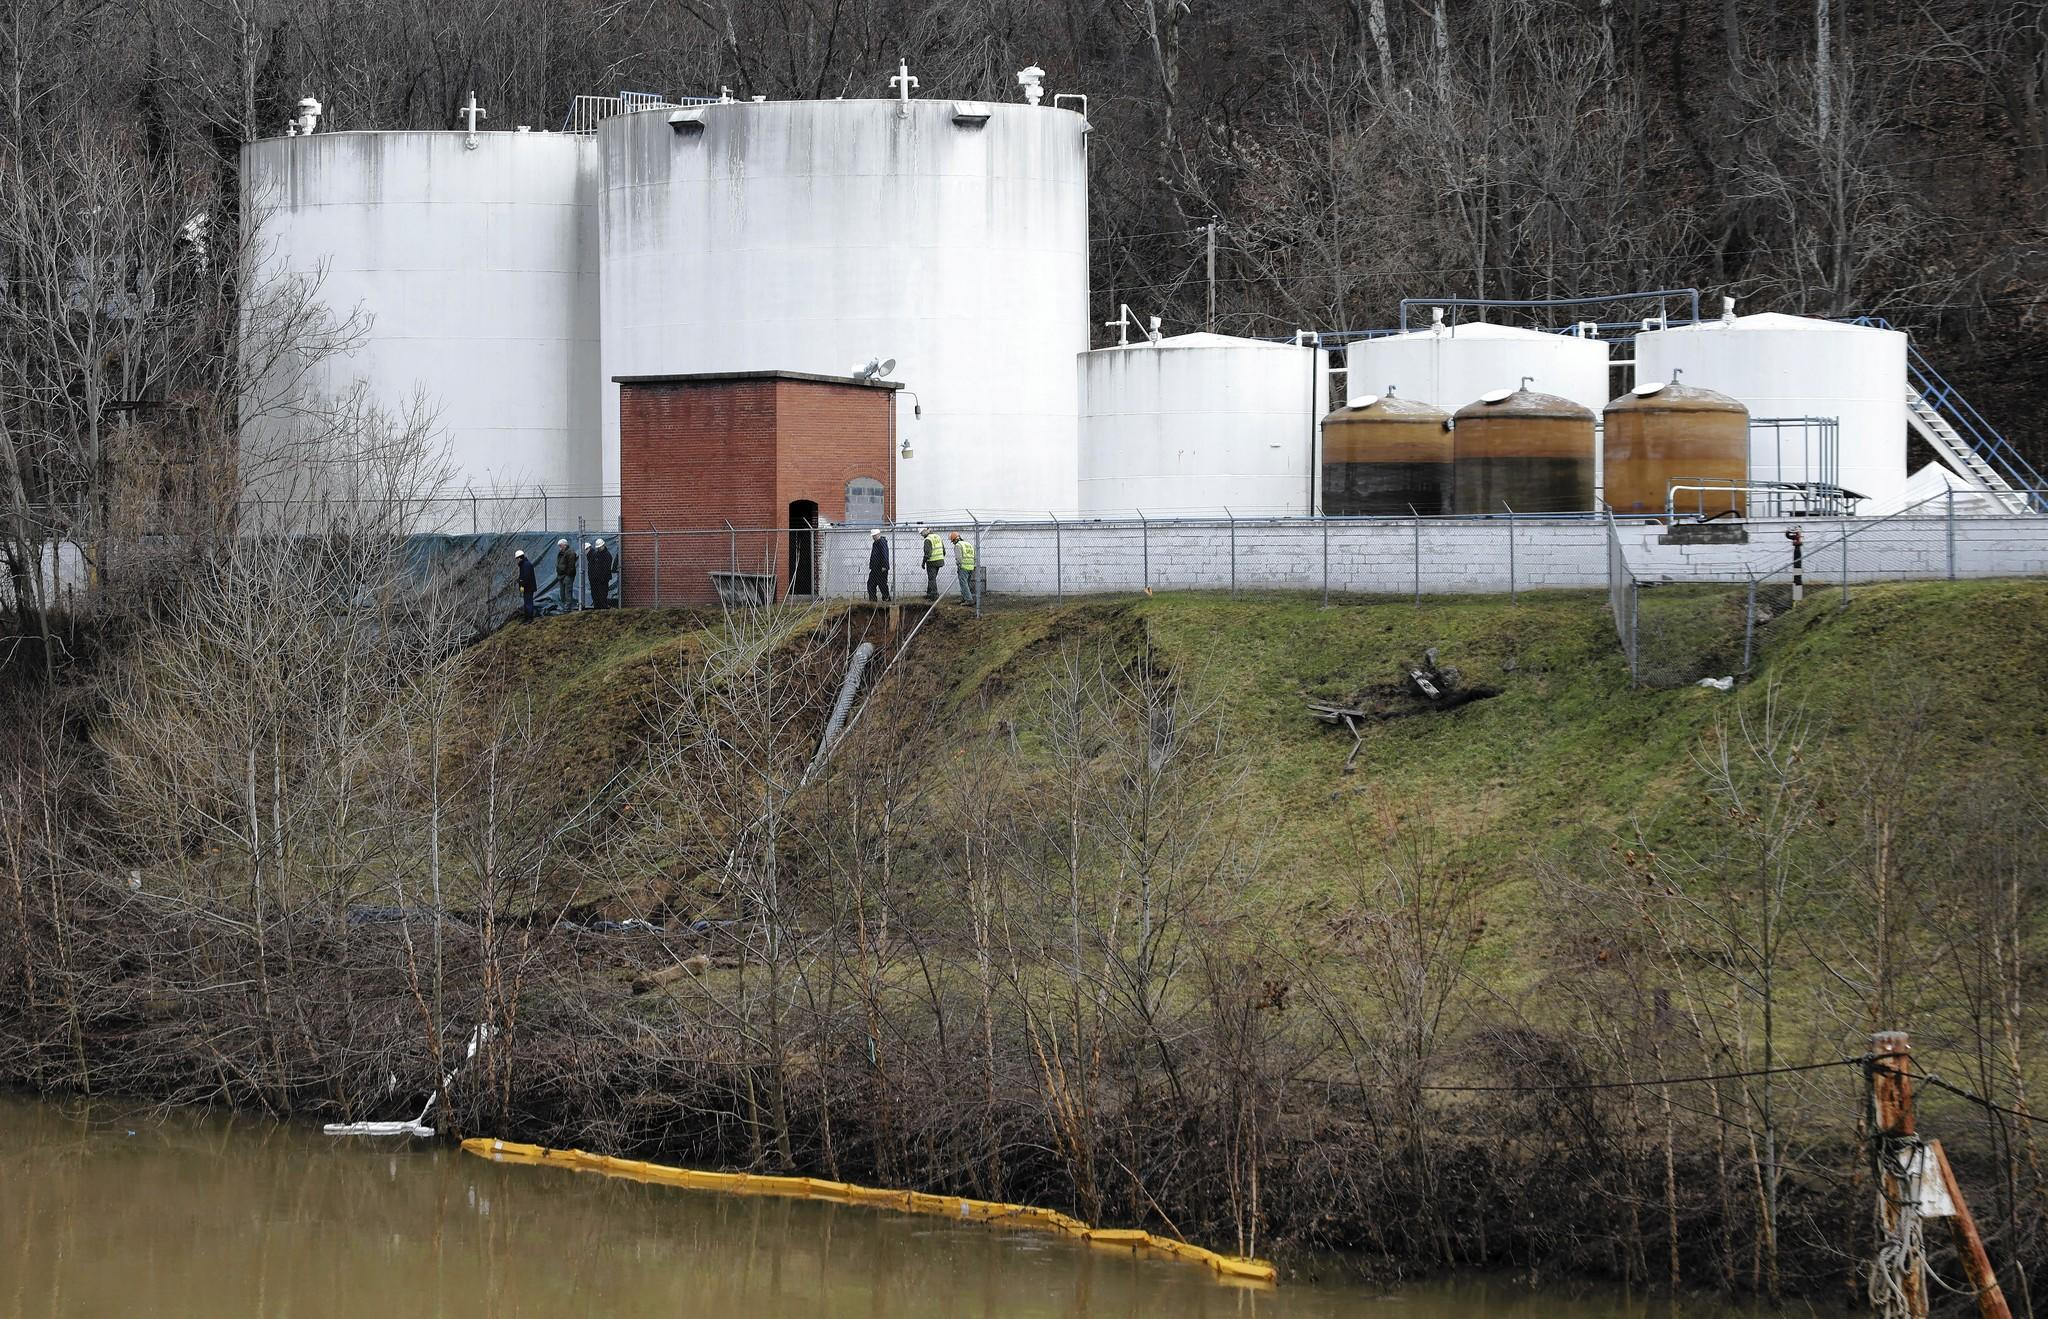 At least 7,500 gallons of a little-understood chemical known as MCHM spilled into the Elk River.